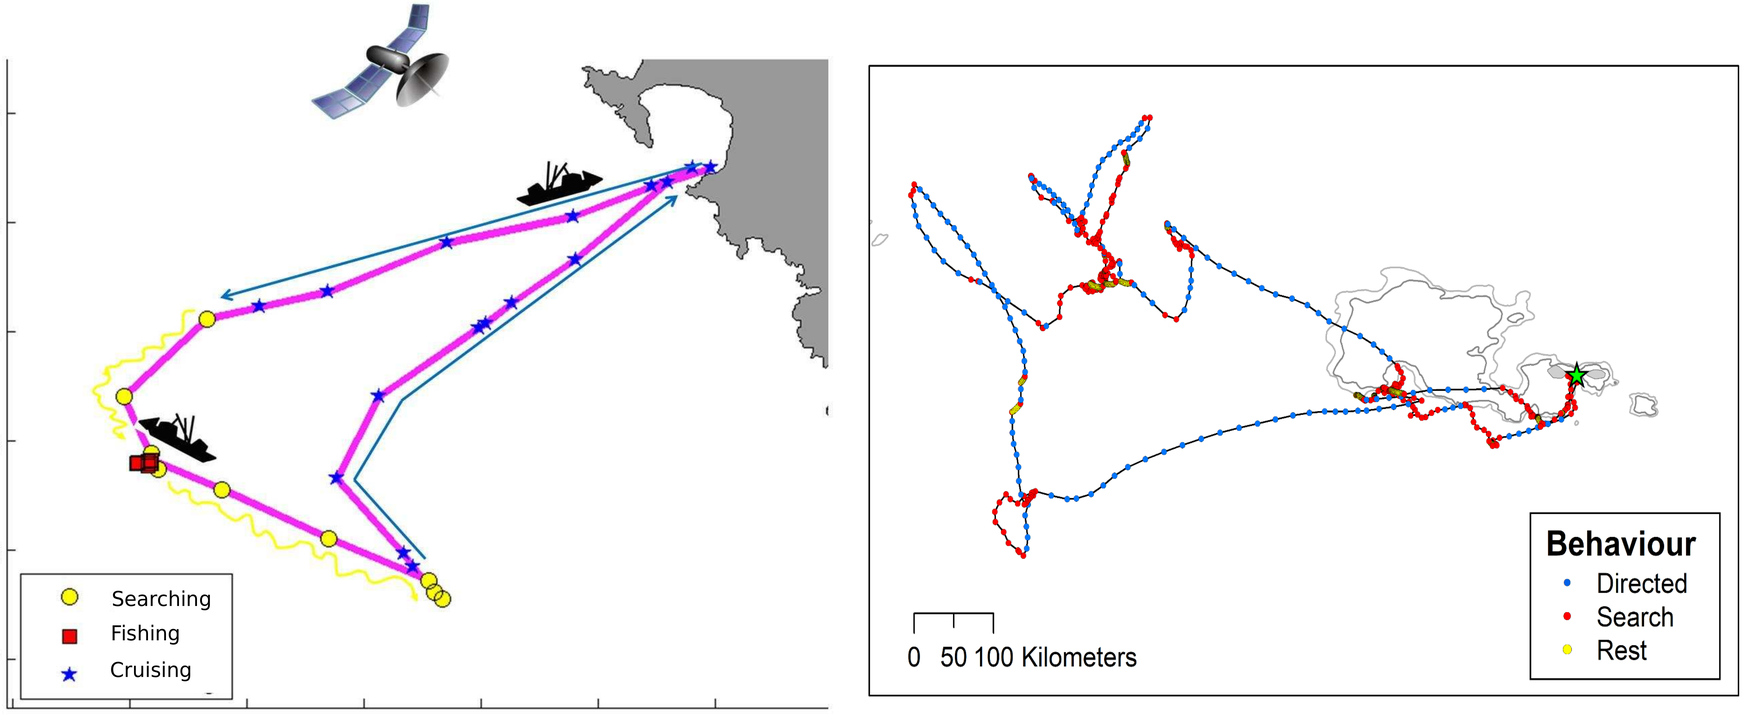 Fig. Inferred behavioral modes. Left panel: fishing vessel track (Joo et al. 2013). Right panel: seabird track (Clay et al. 2020).